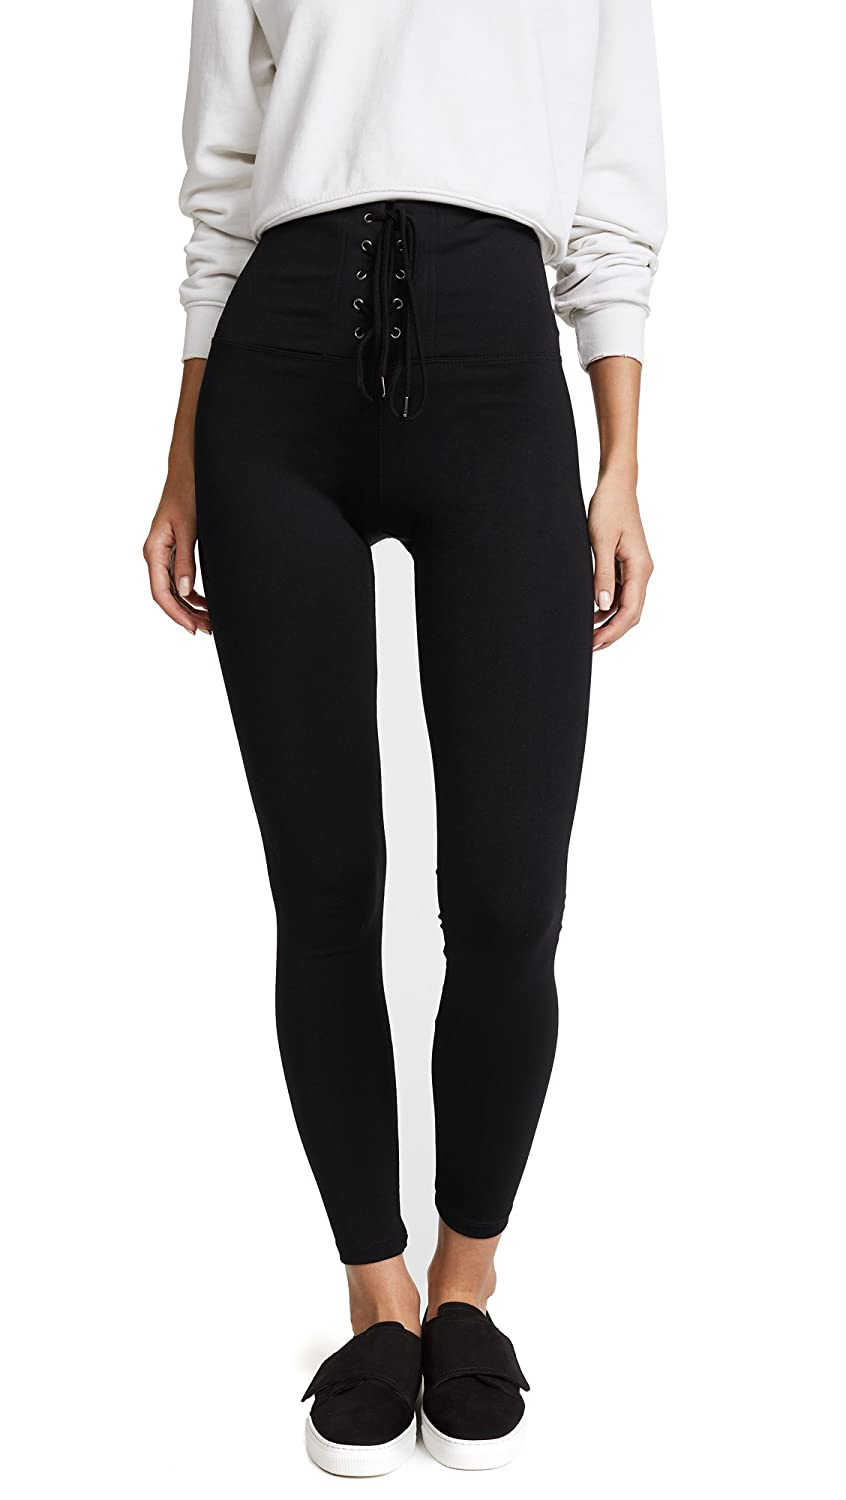 9b28af08b440e David Lerner Women's High Rise Corset Leggings, Classic Black, Small:  Amazon.ca: Clothing & Accessories